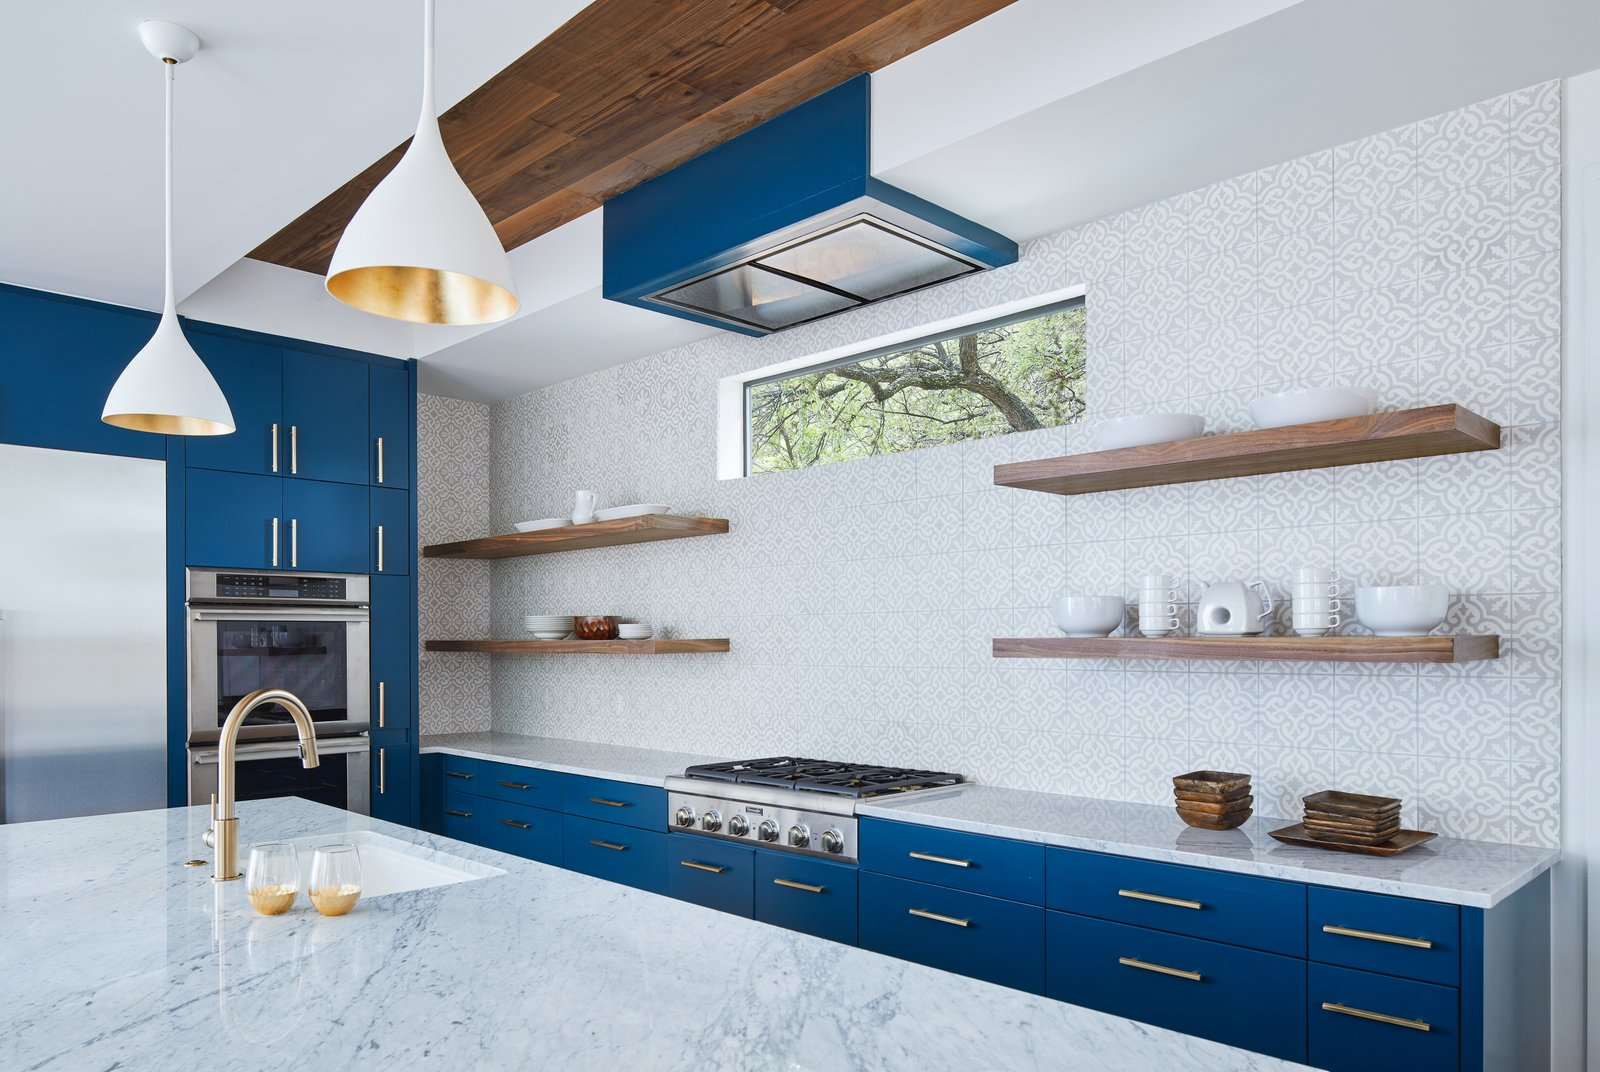 Kitchen, Refrigerator, Wine Cooler, Marble, Range Hood, Wall Oven, Colorful, Concrete, Dark Hardwood, Stone Tile, Cooktops, Pendant, Ceramic Tile, Ceiling, and Undermount Kitchen  Best Kitchen Cooktops Stone Tile Undermount Concrete Photos from Chelsea House